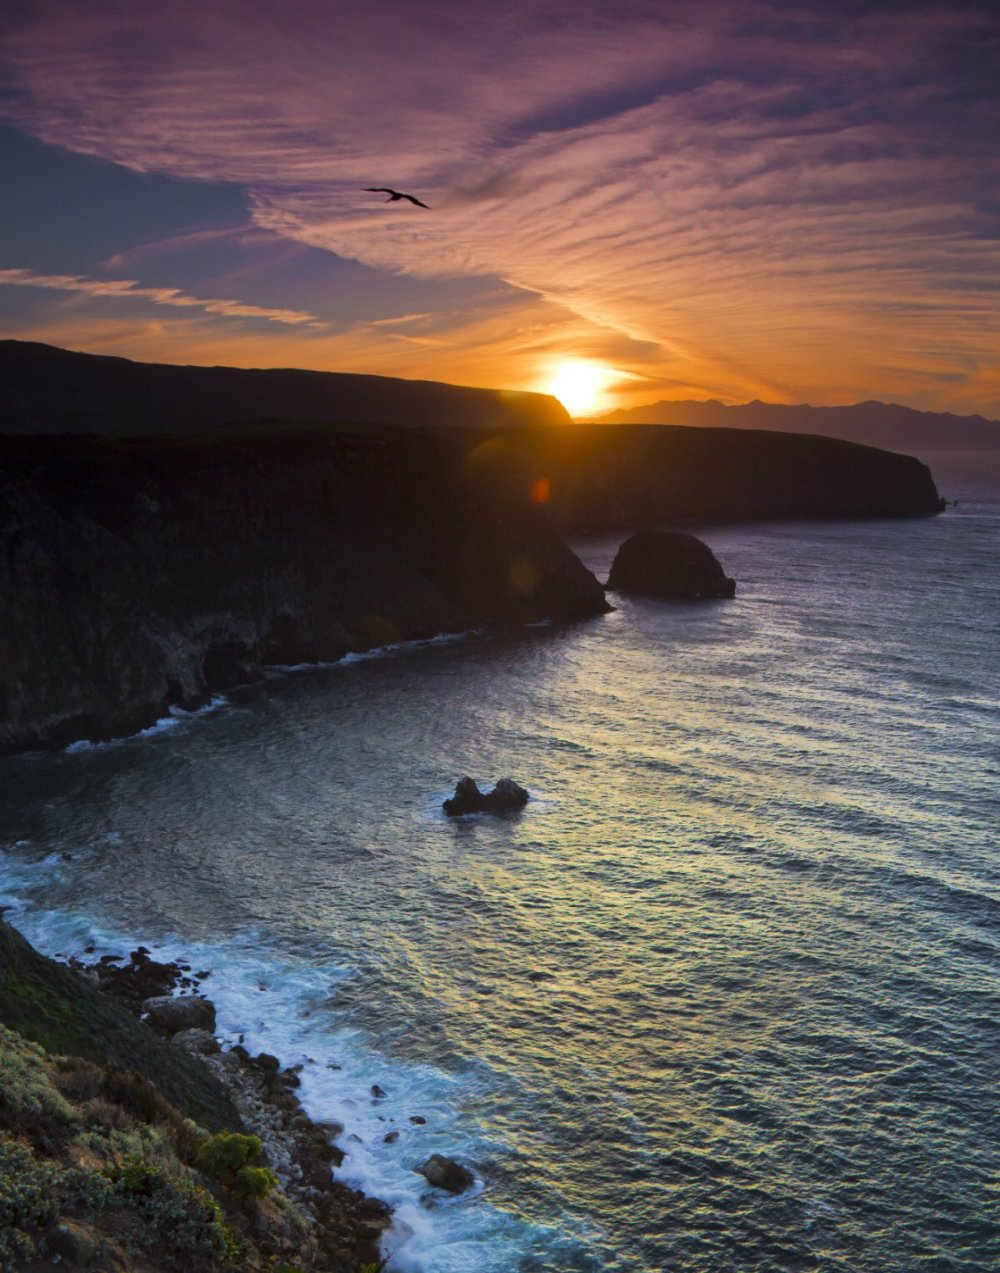 Sunset at California's Channel Islands National Park. Photo by Kurt Schuette. Tweeted by the US Department of the Interior, 7/30/16.